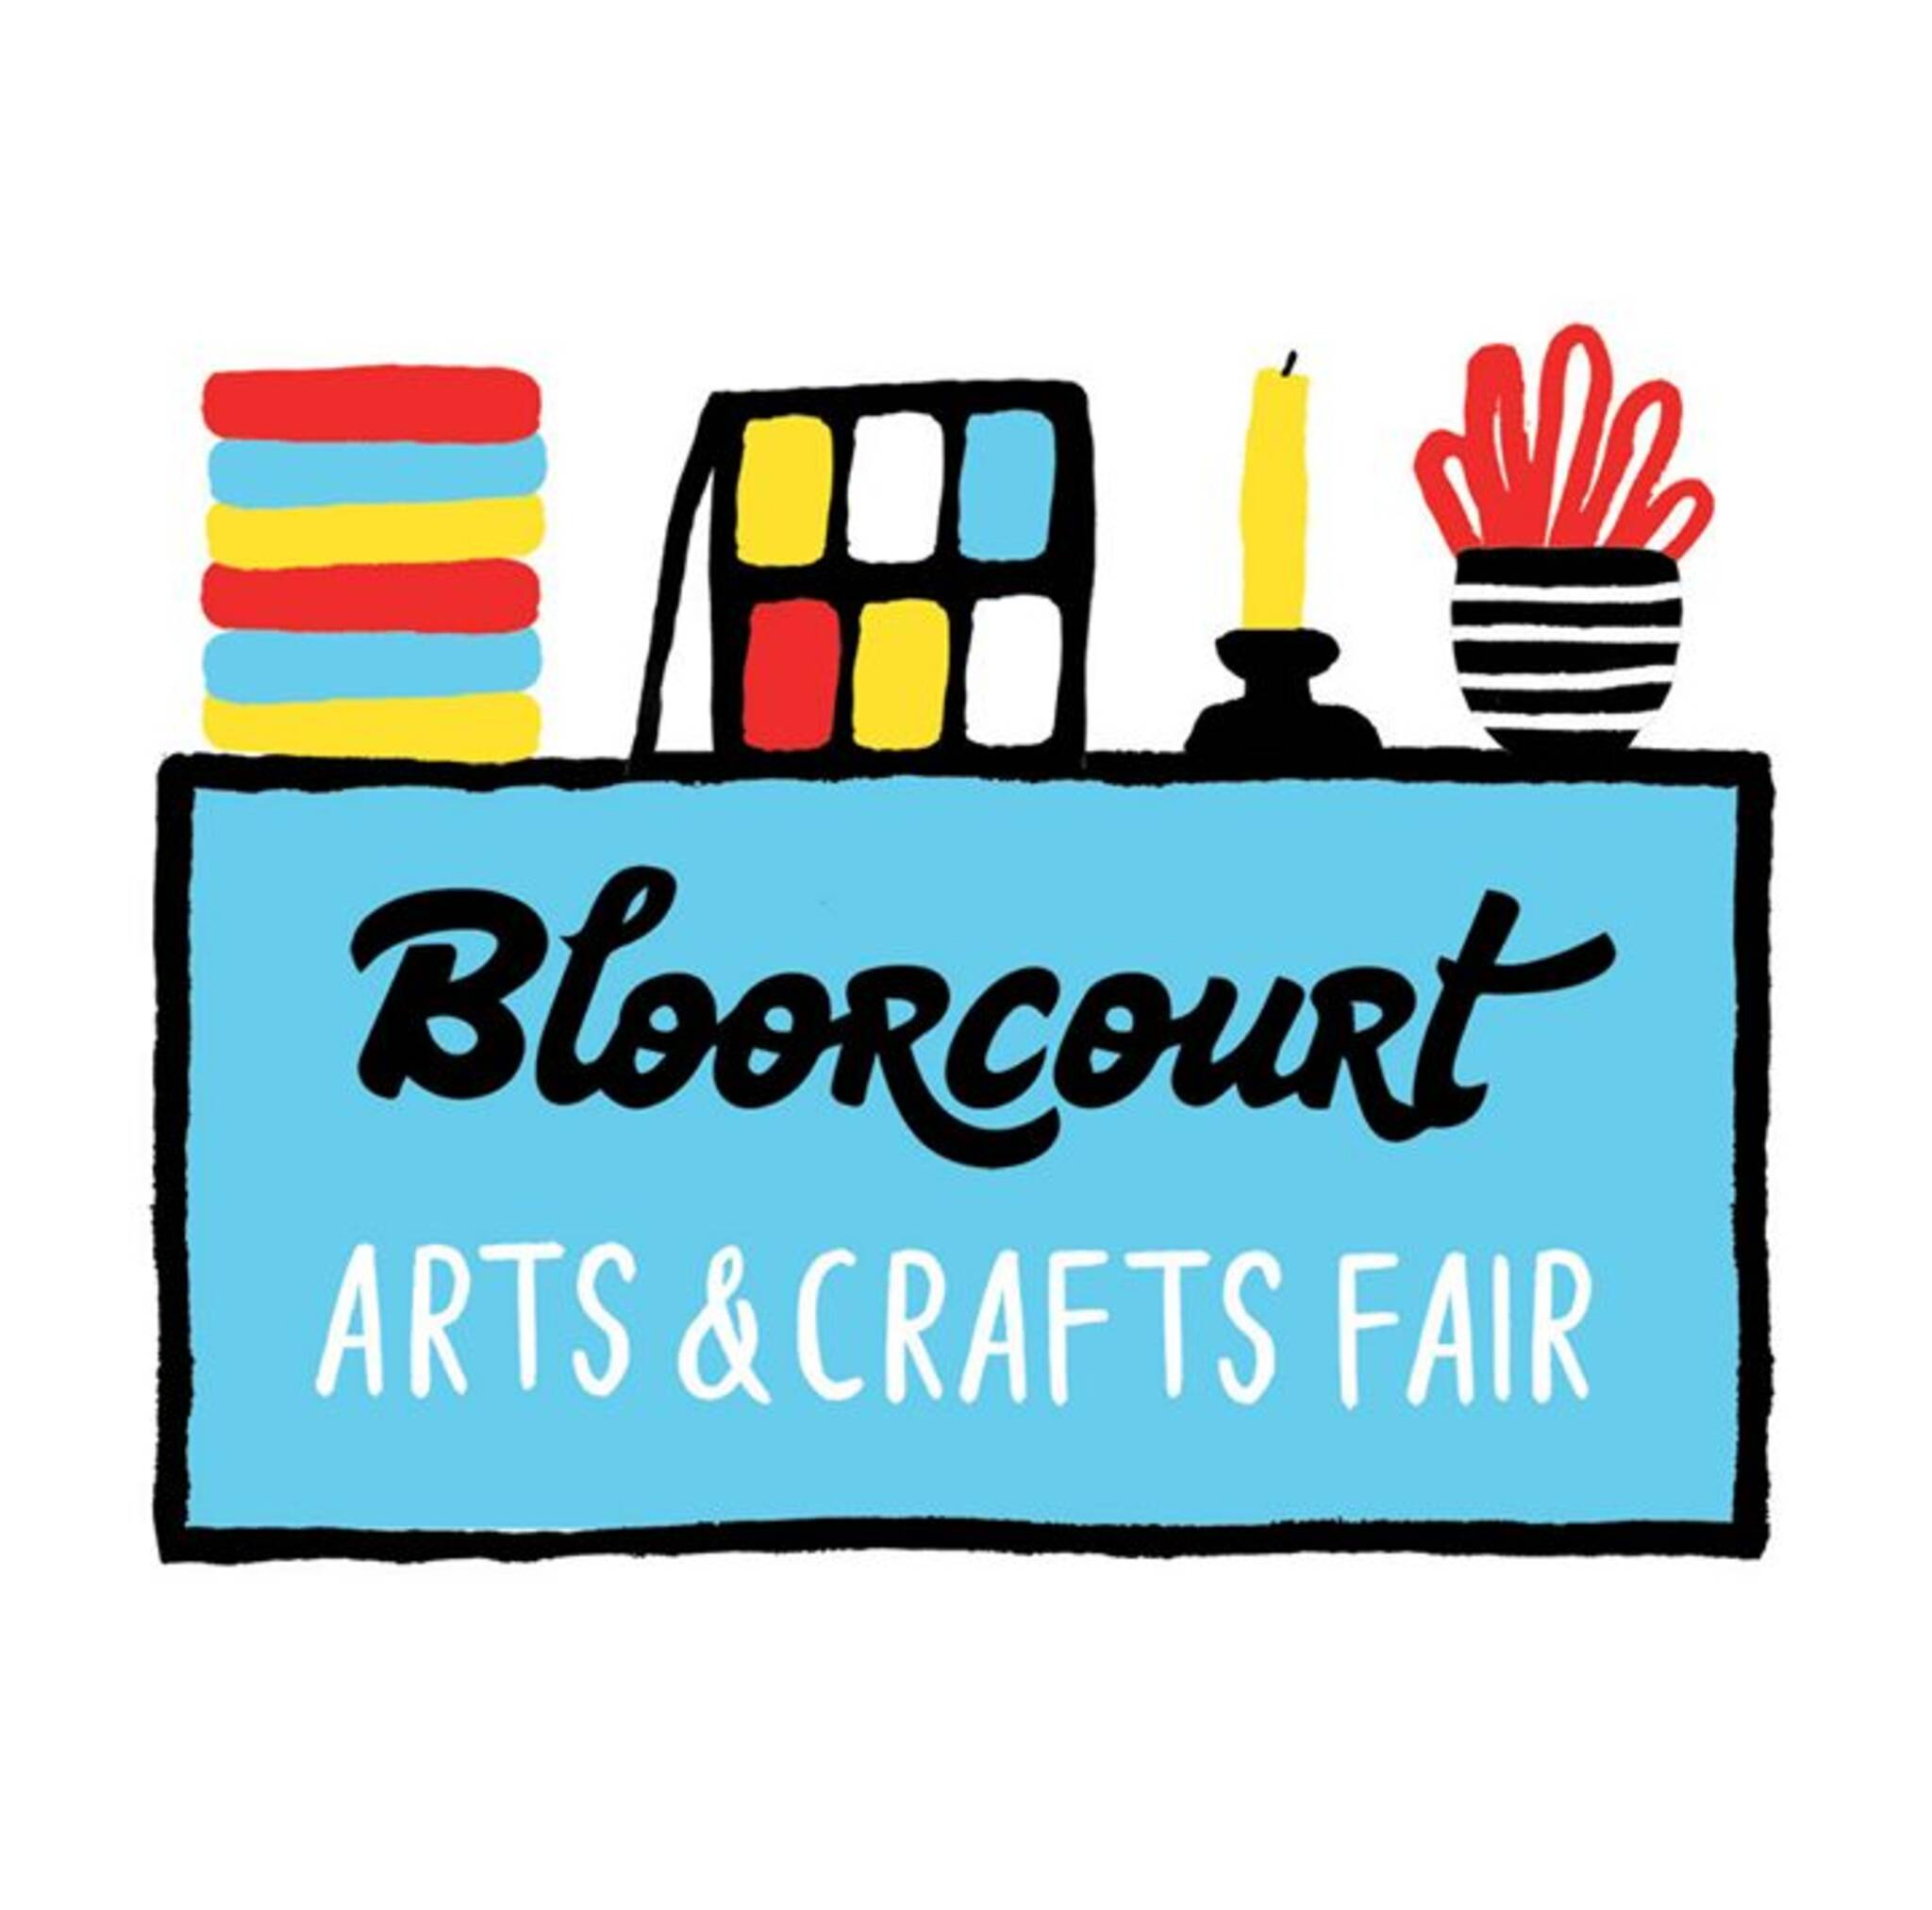 Bloorcourt arts crafts fair 2015 for Arts and crafts festival